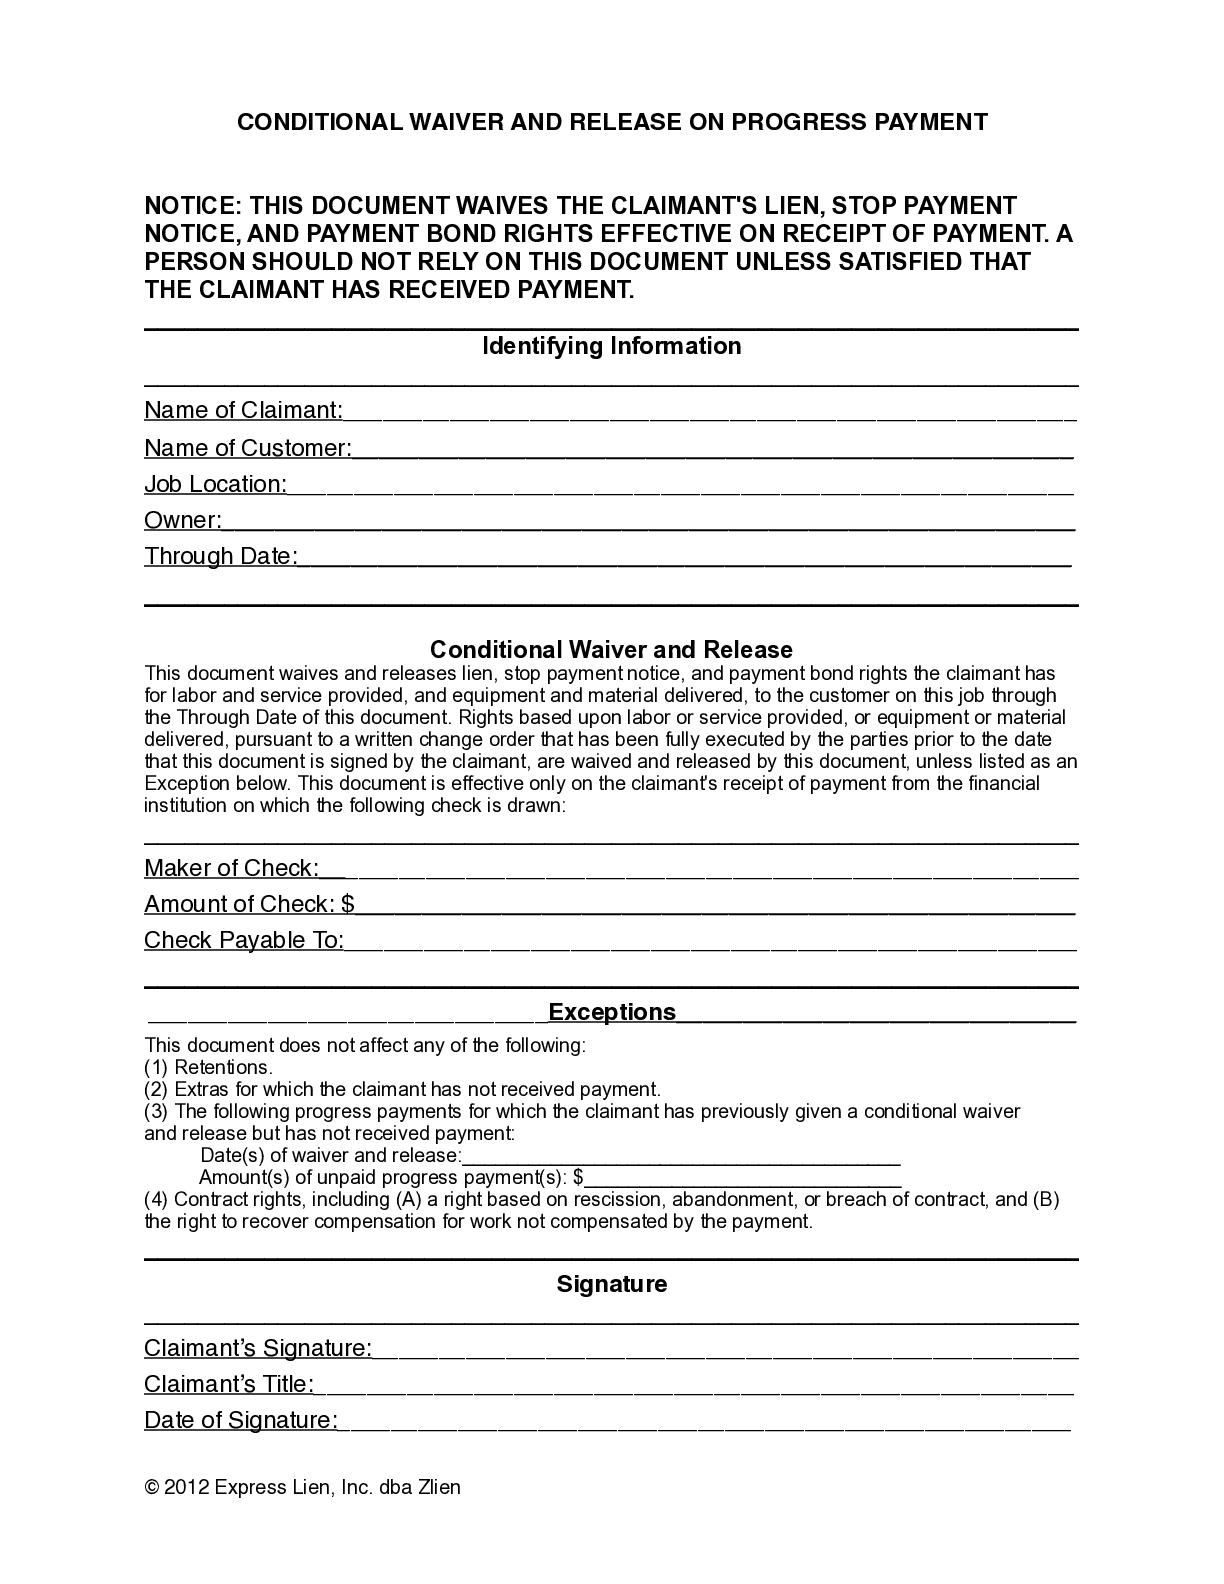 Virginia Partial Conditional Lien Waiver Form